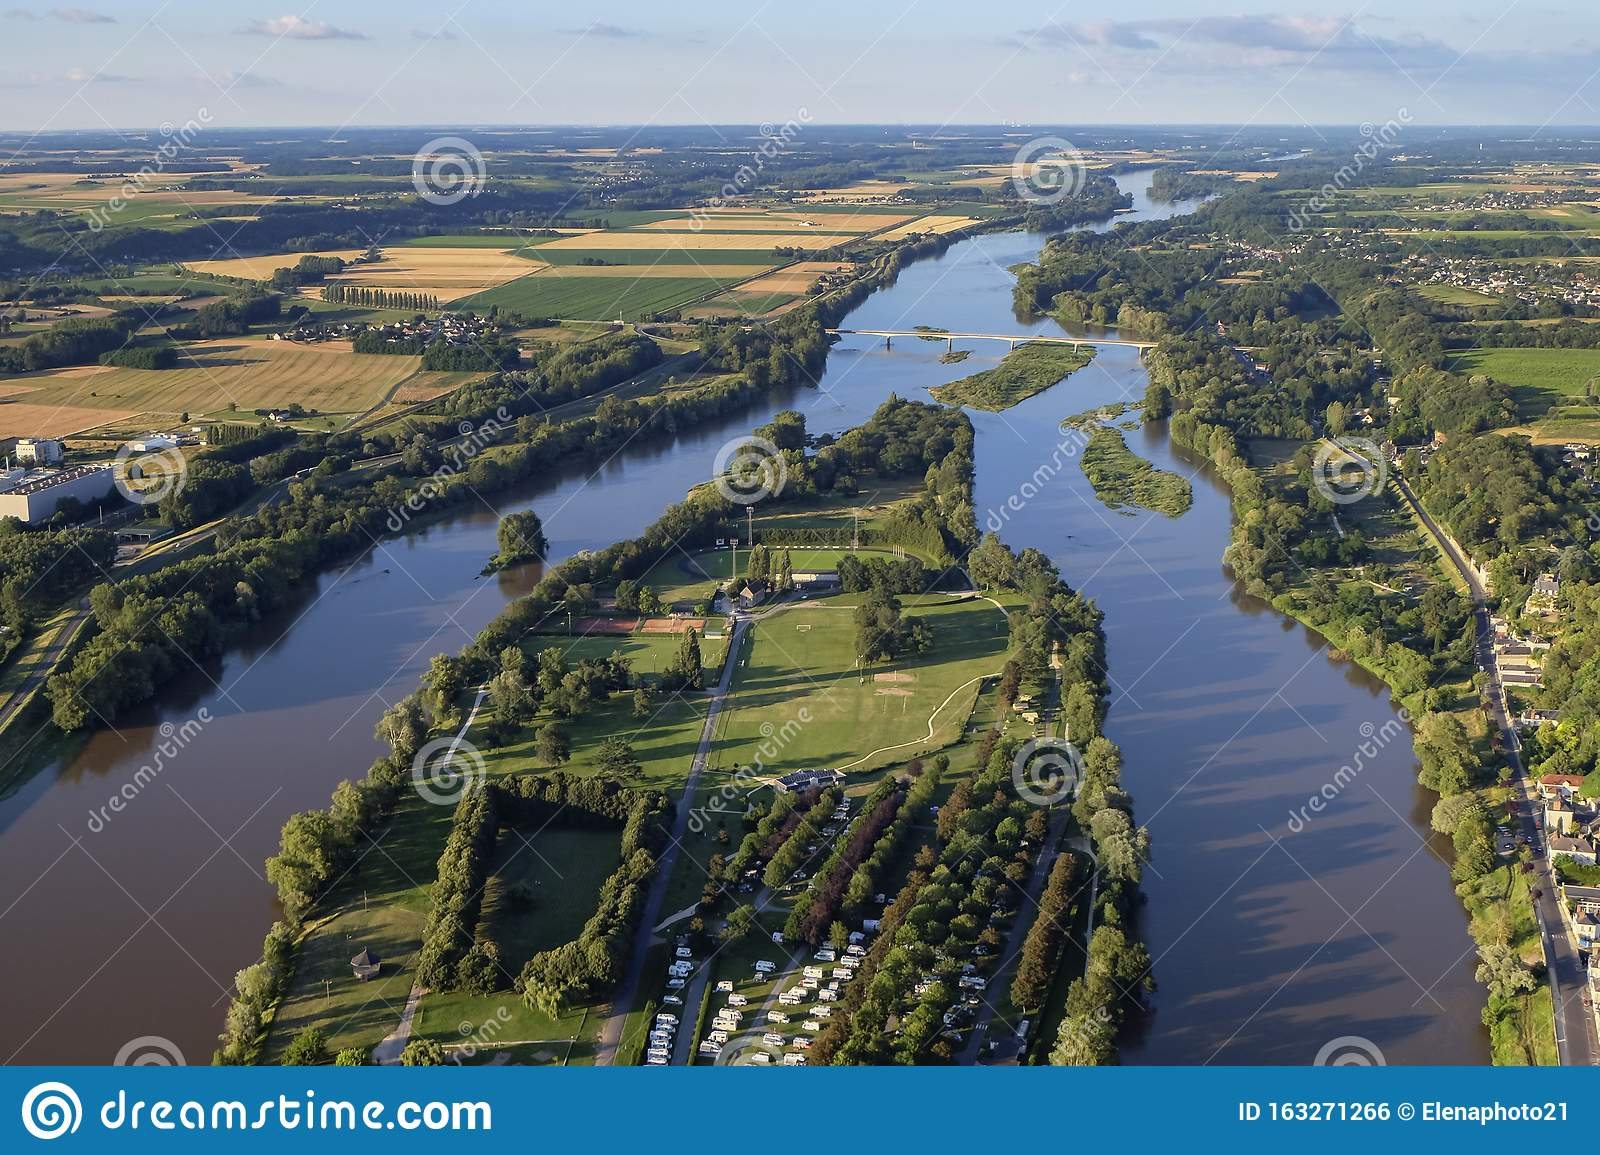 Aerial view of the Loire Valley, France